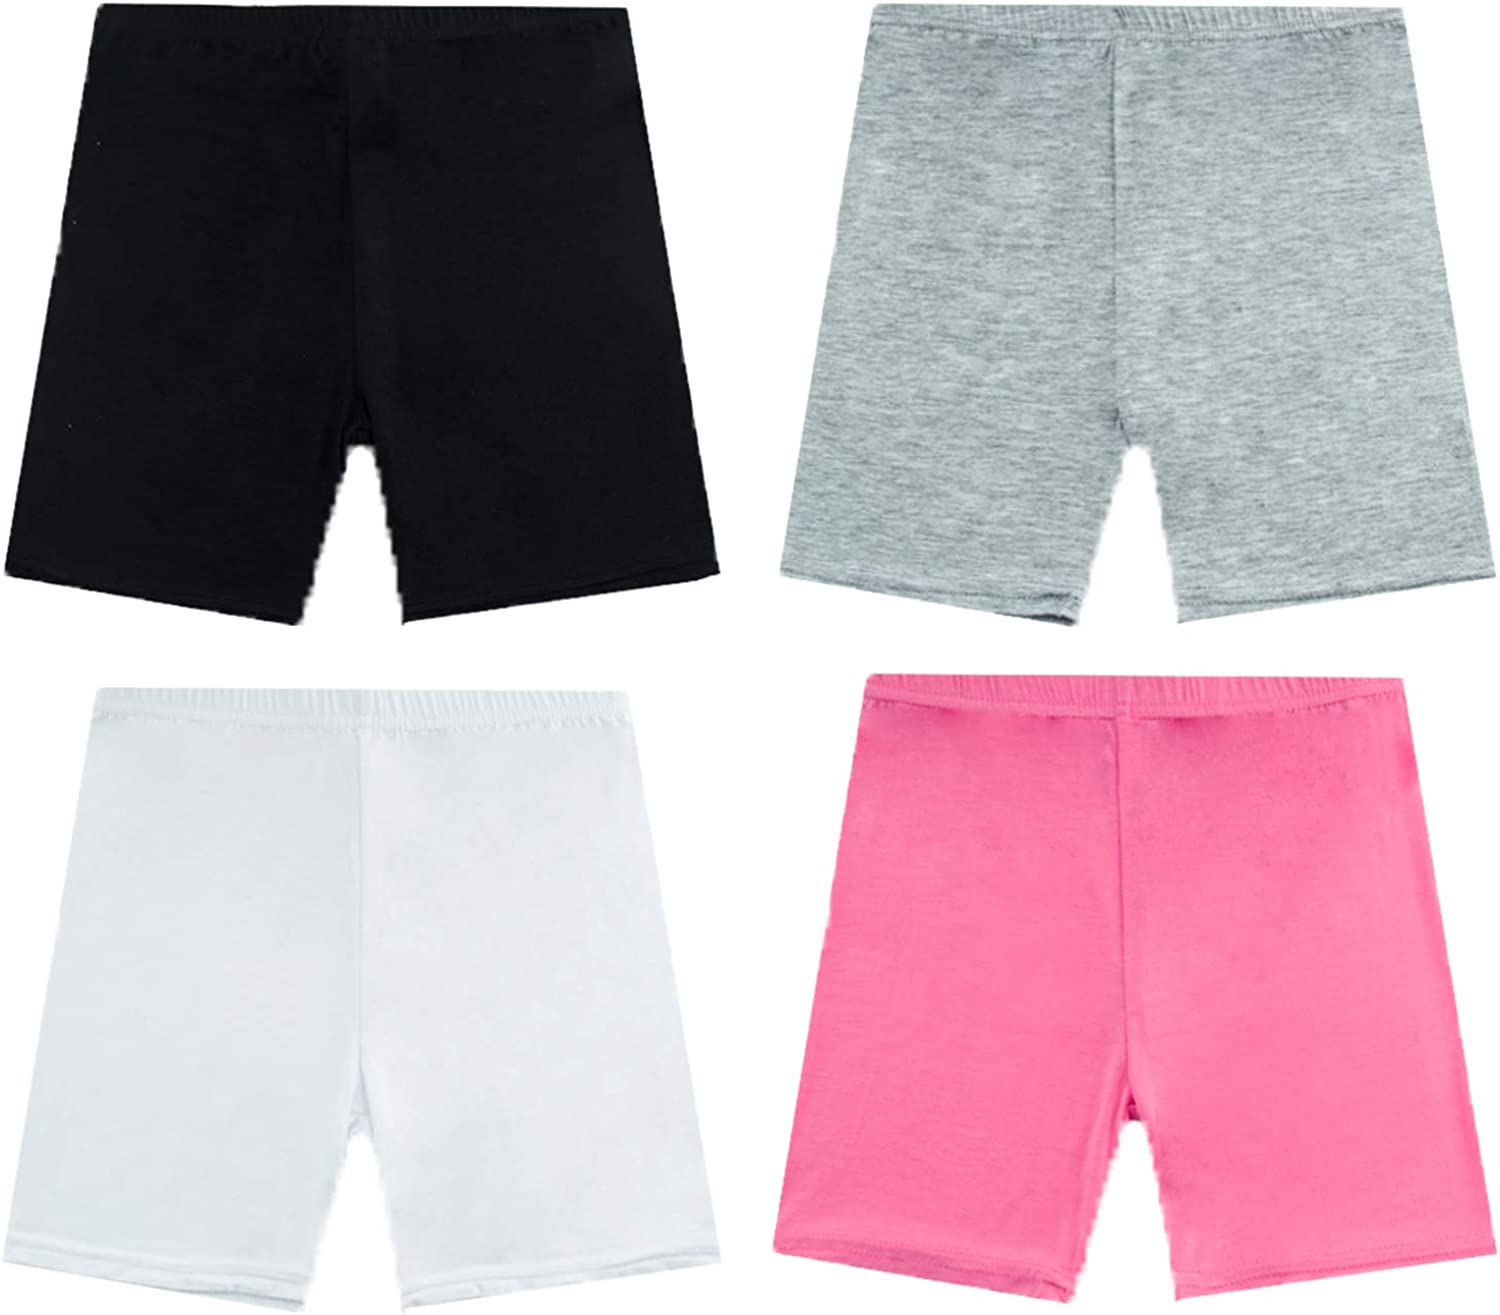 NEWITIN 4 Pieces Dance Shorts Comfor Credence Breathable Limited price Girls Bike Short